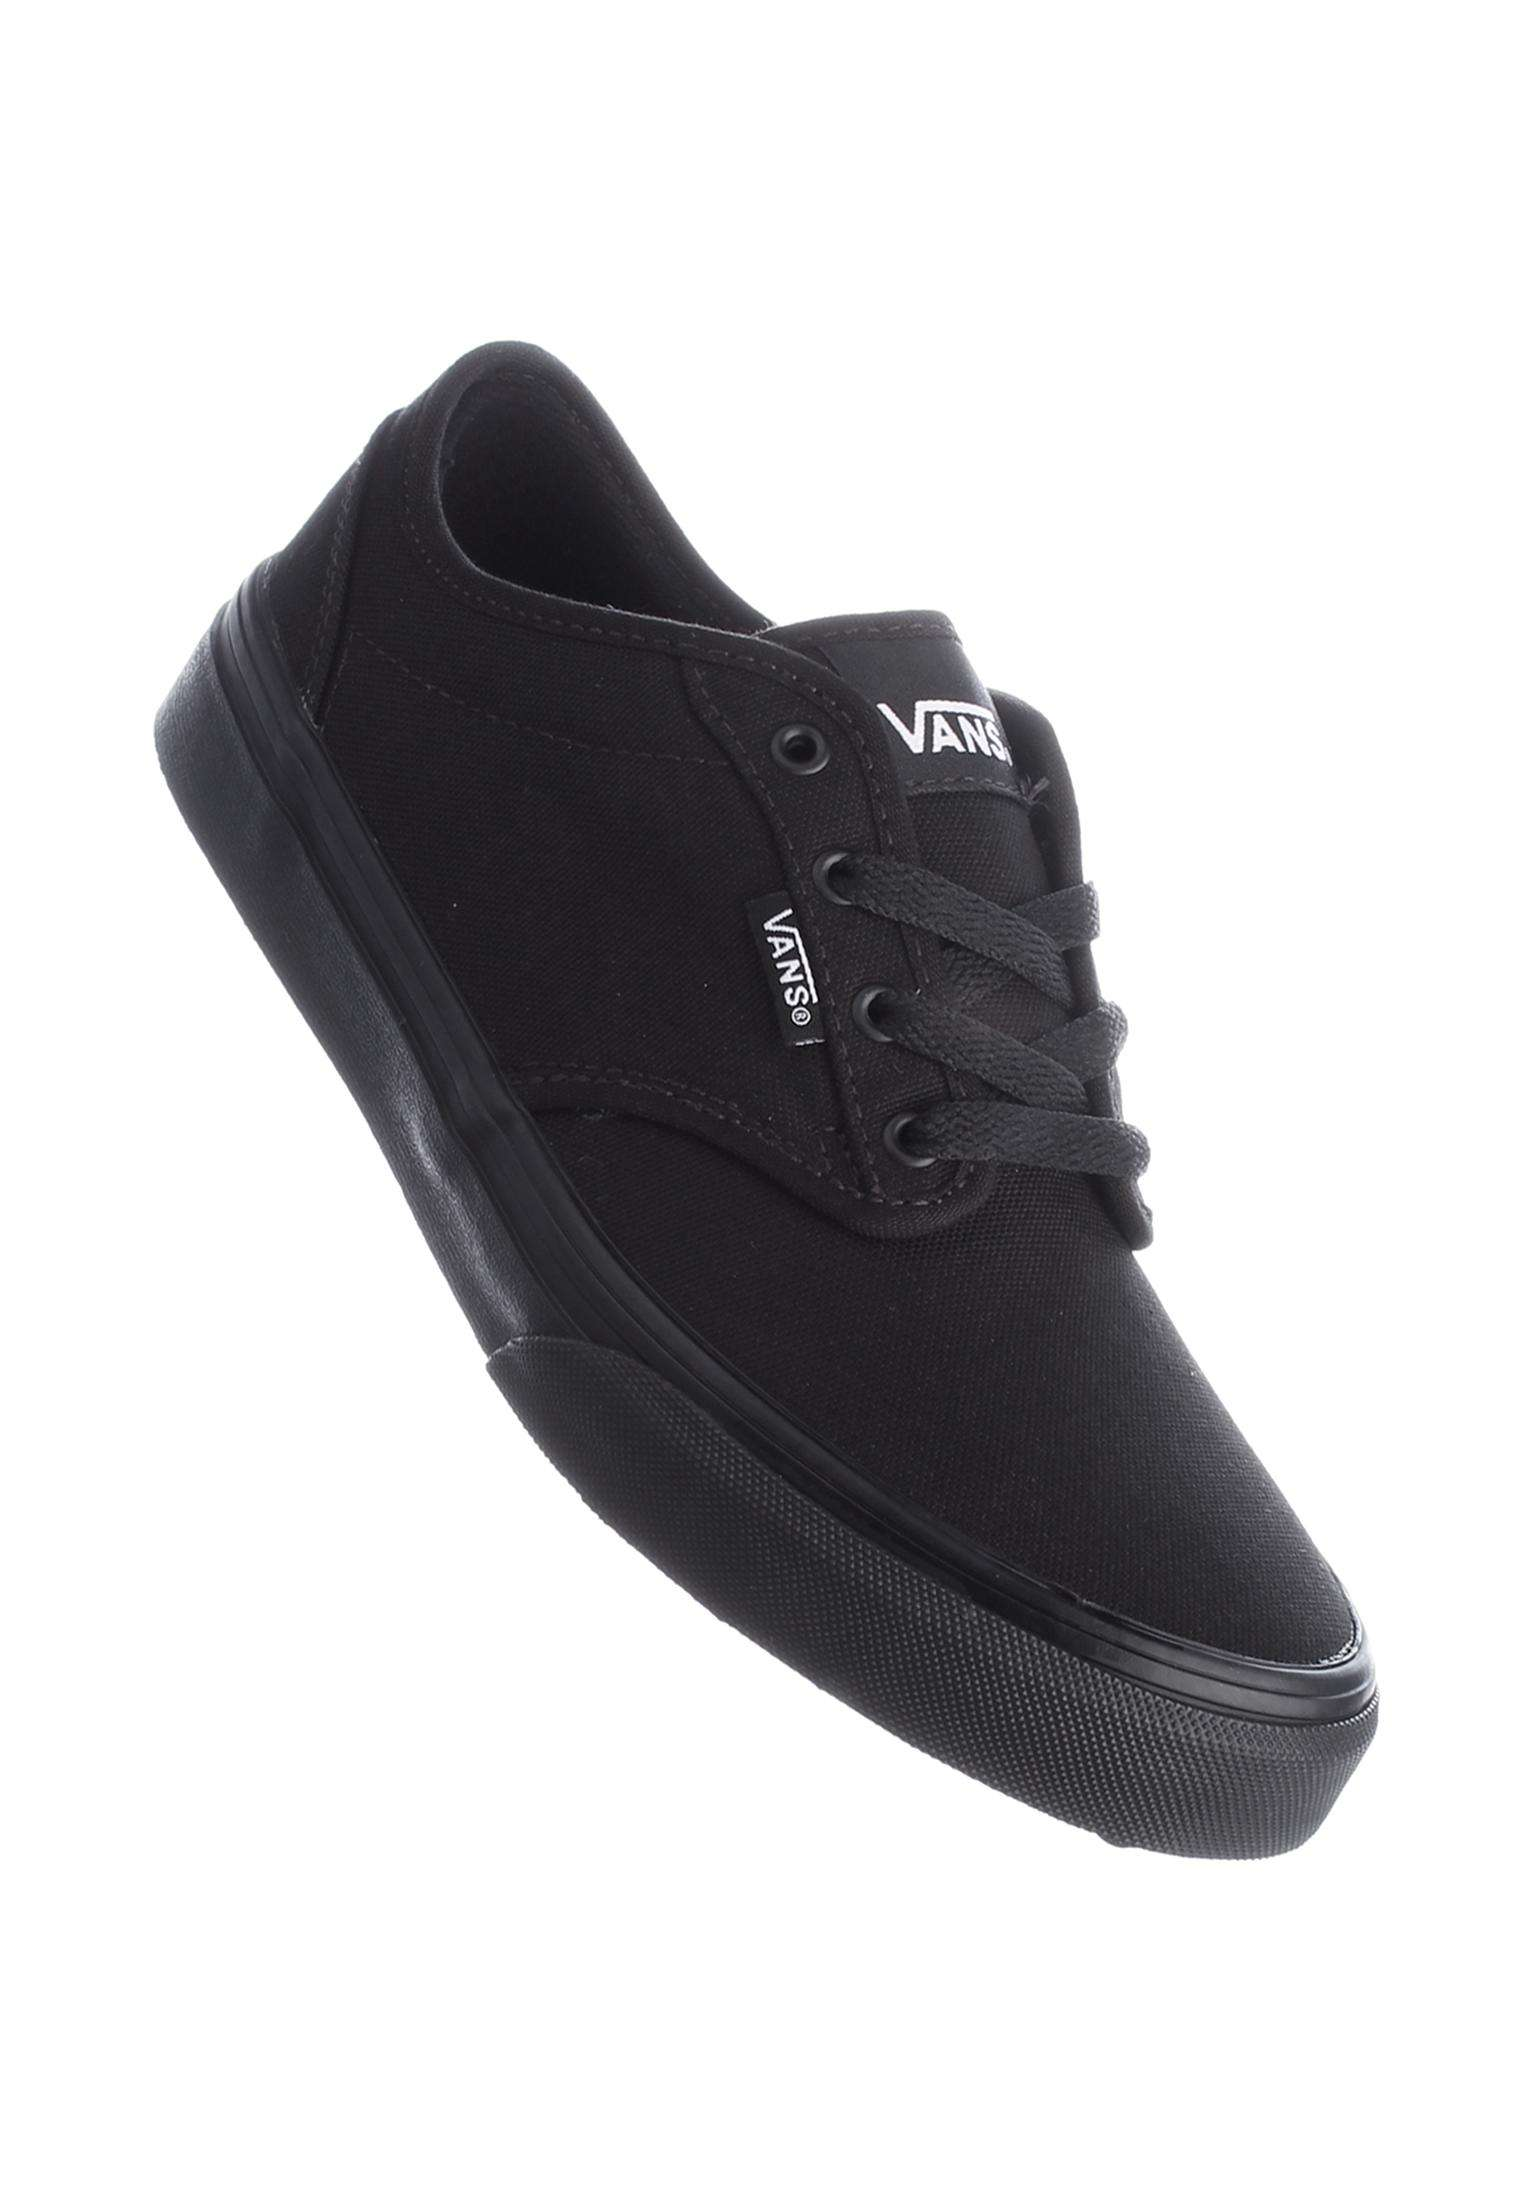 Atwood Kids Vans All Shoes in black-black for Kids  42650816e9e7